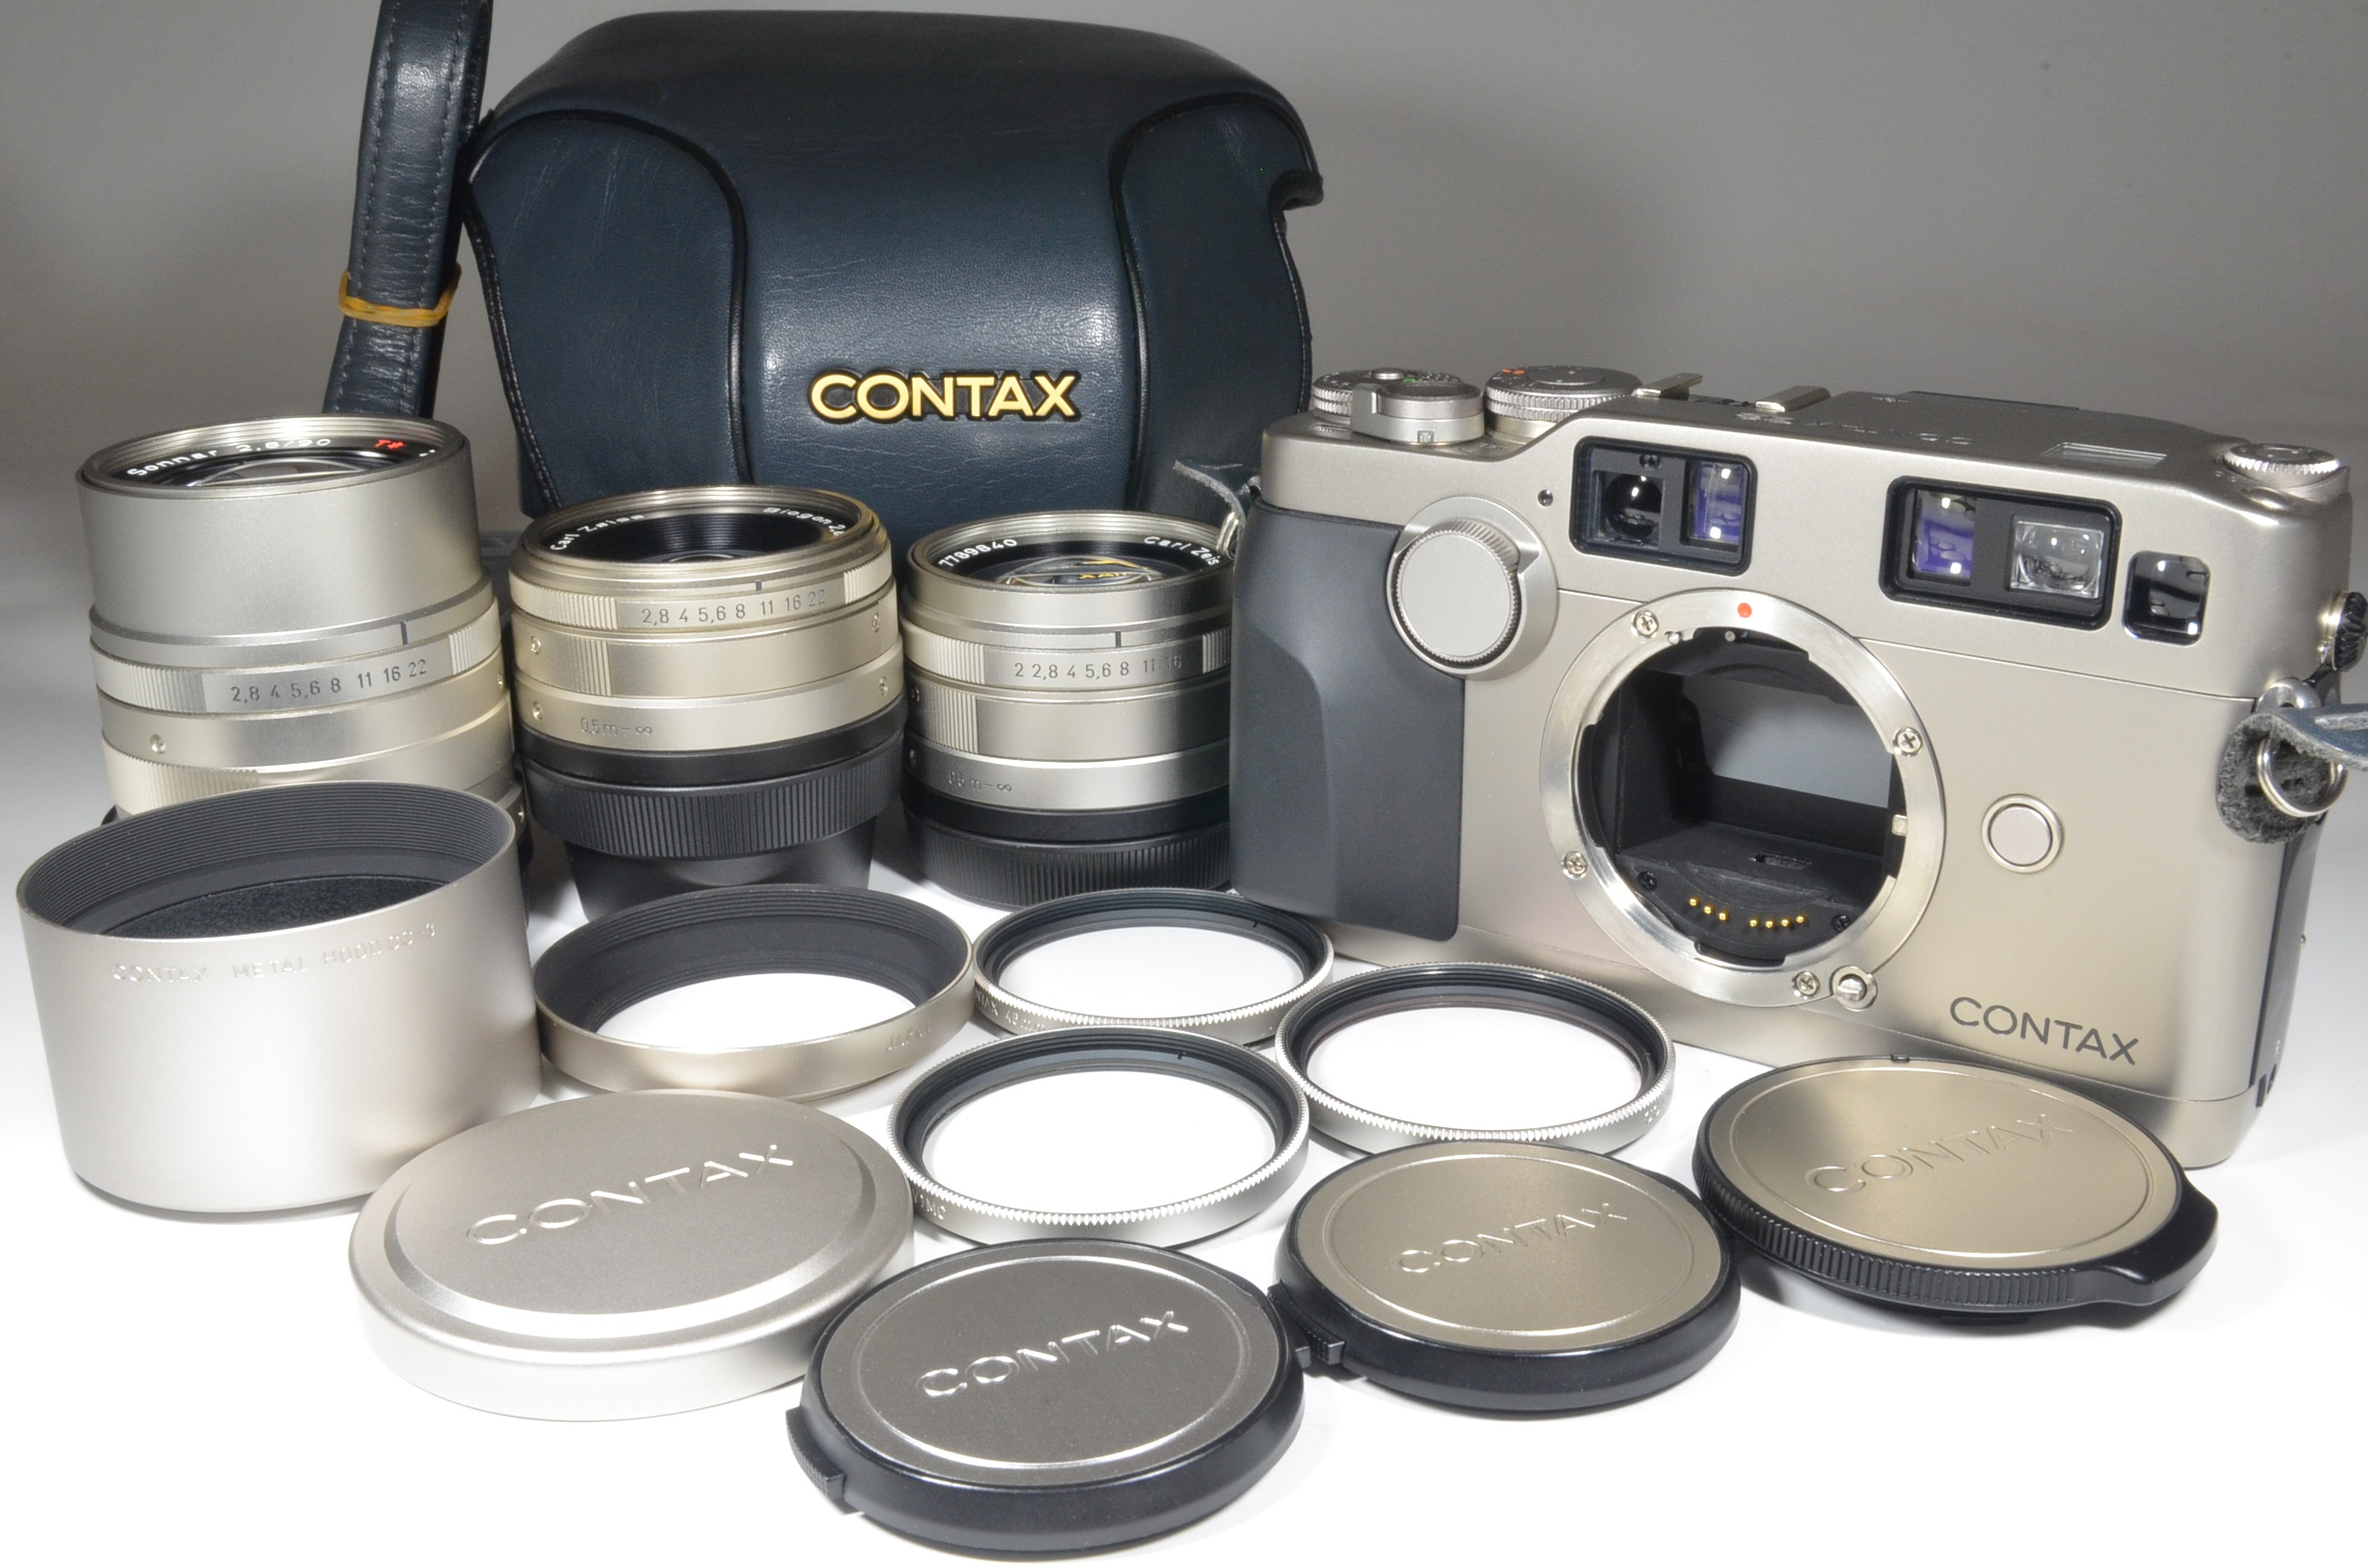 contax g2 data back, case, planar 45mm f2, biogon 28mm f2.8, sonnar 90mm f2.8